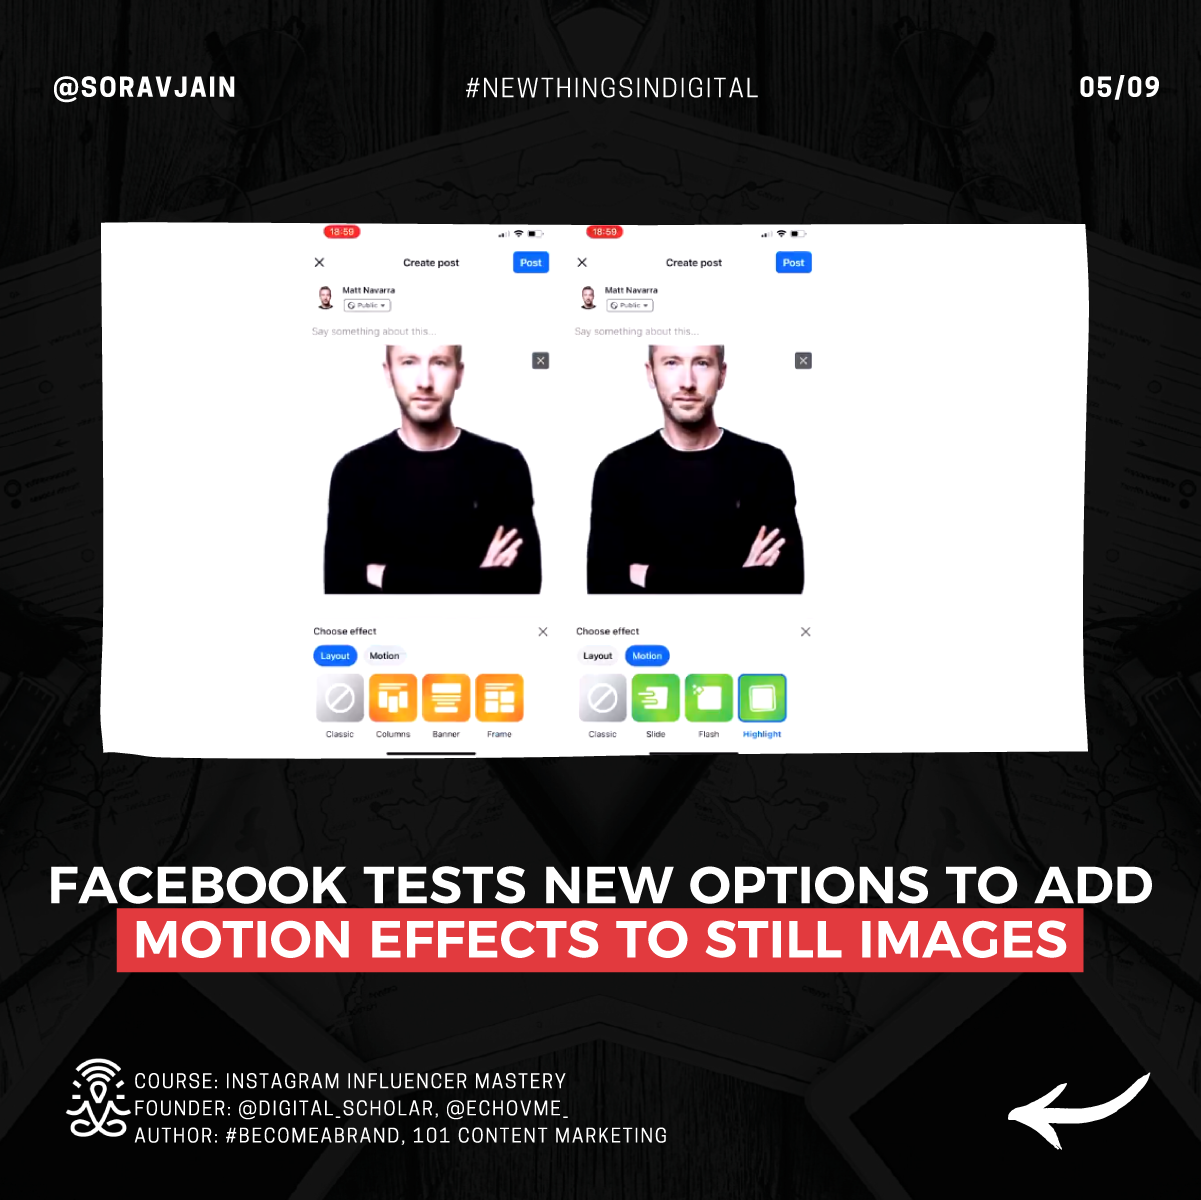 Facebook Tests New Options to Add Motion Effects to Still Images